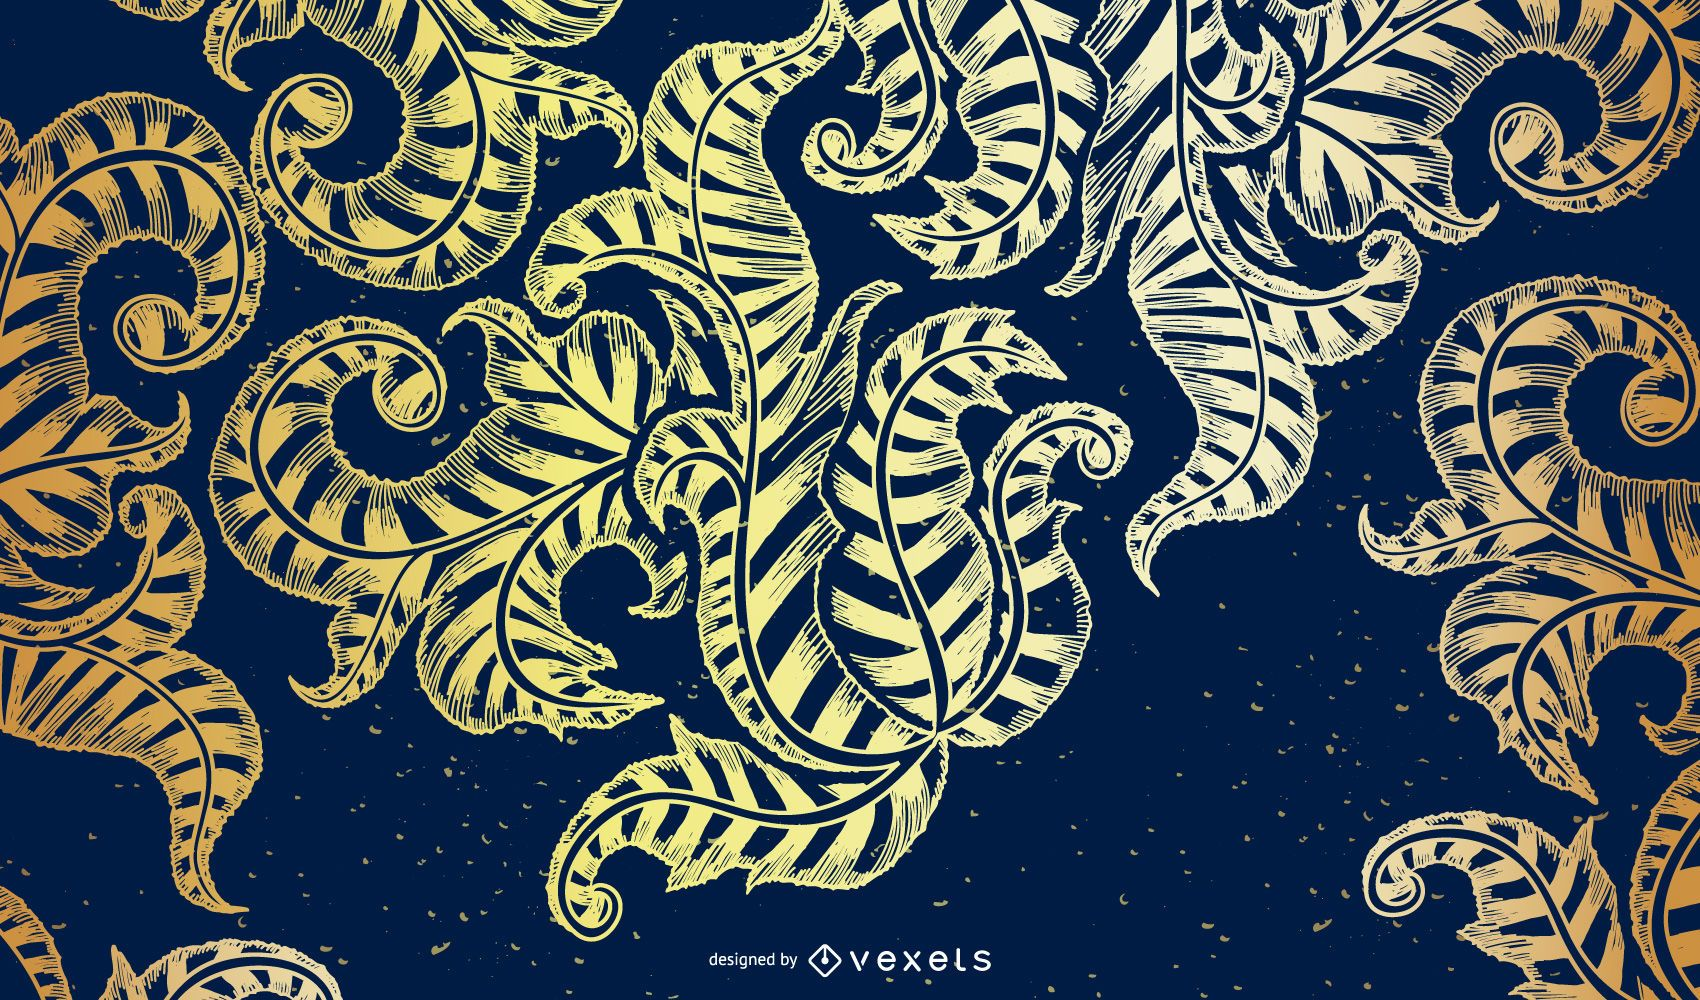 Blue and gold backdrop design